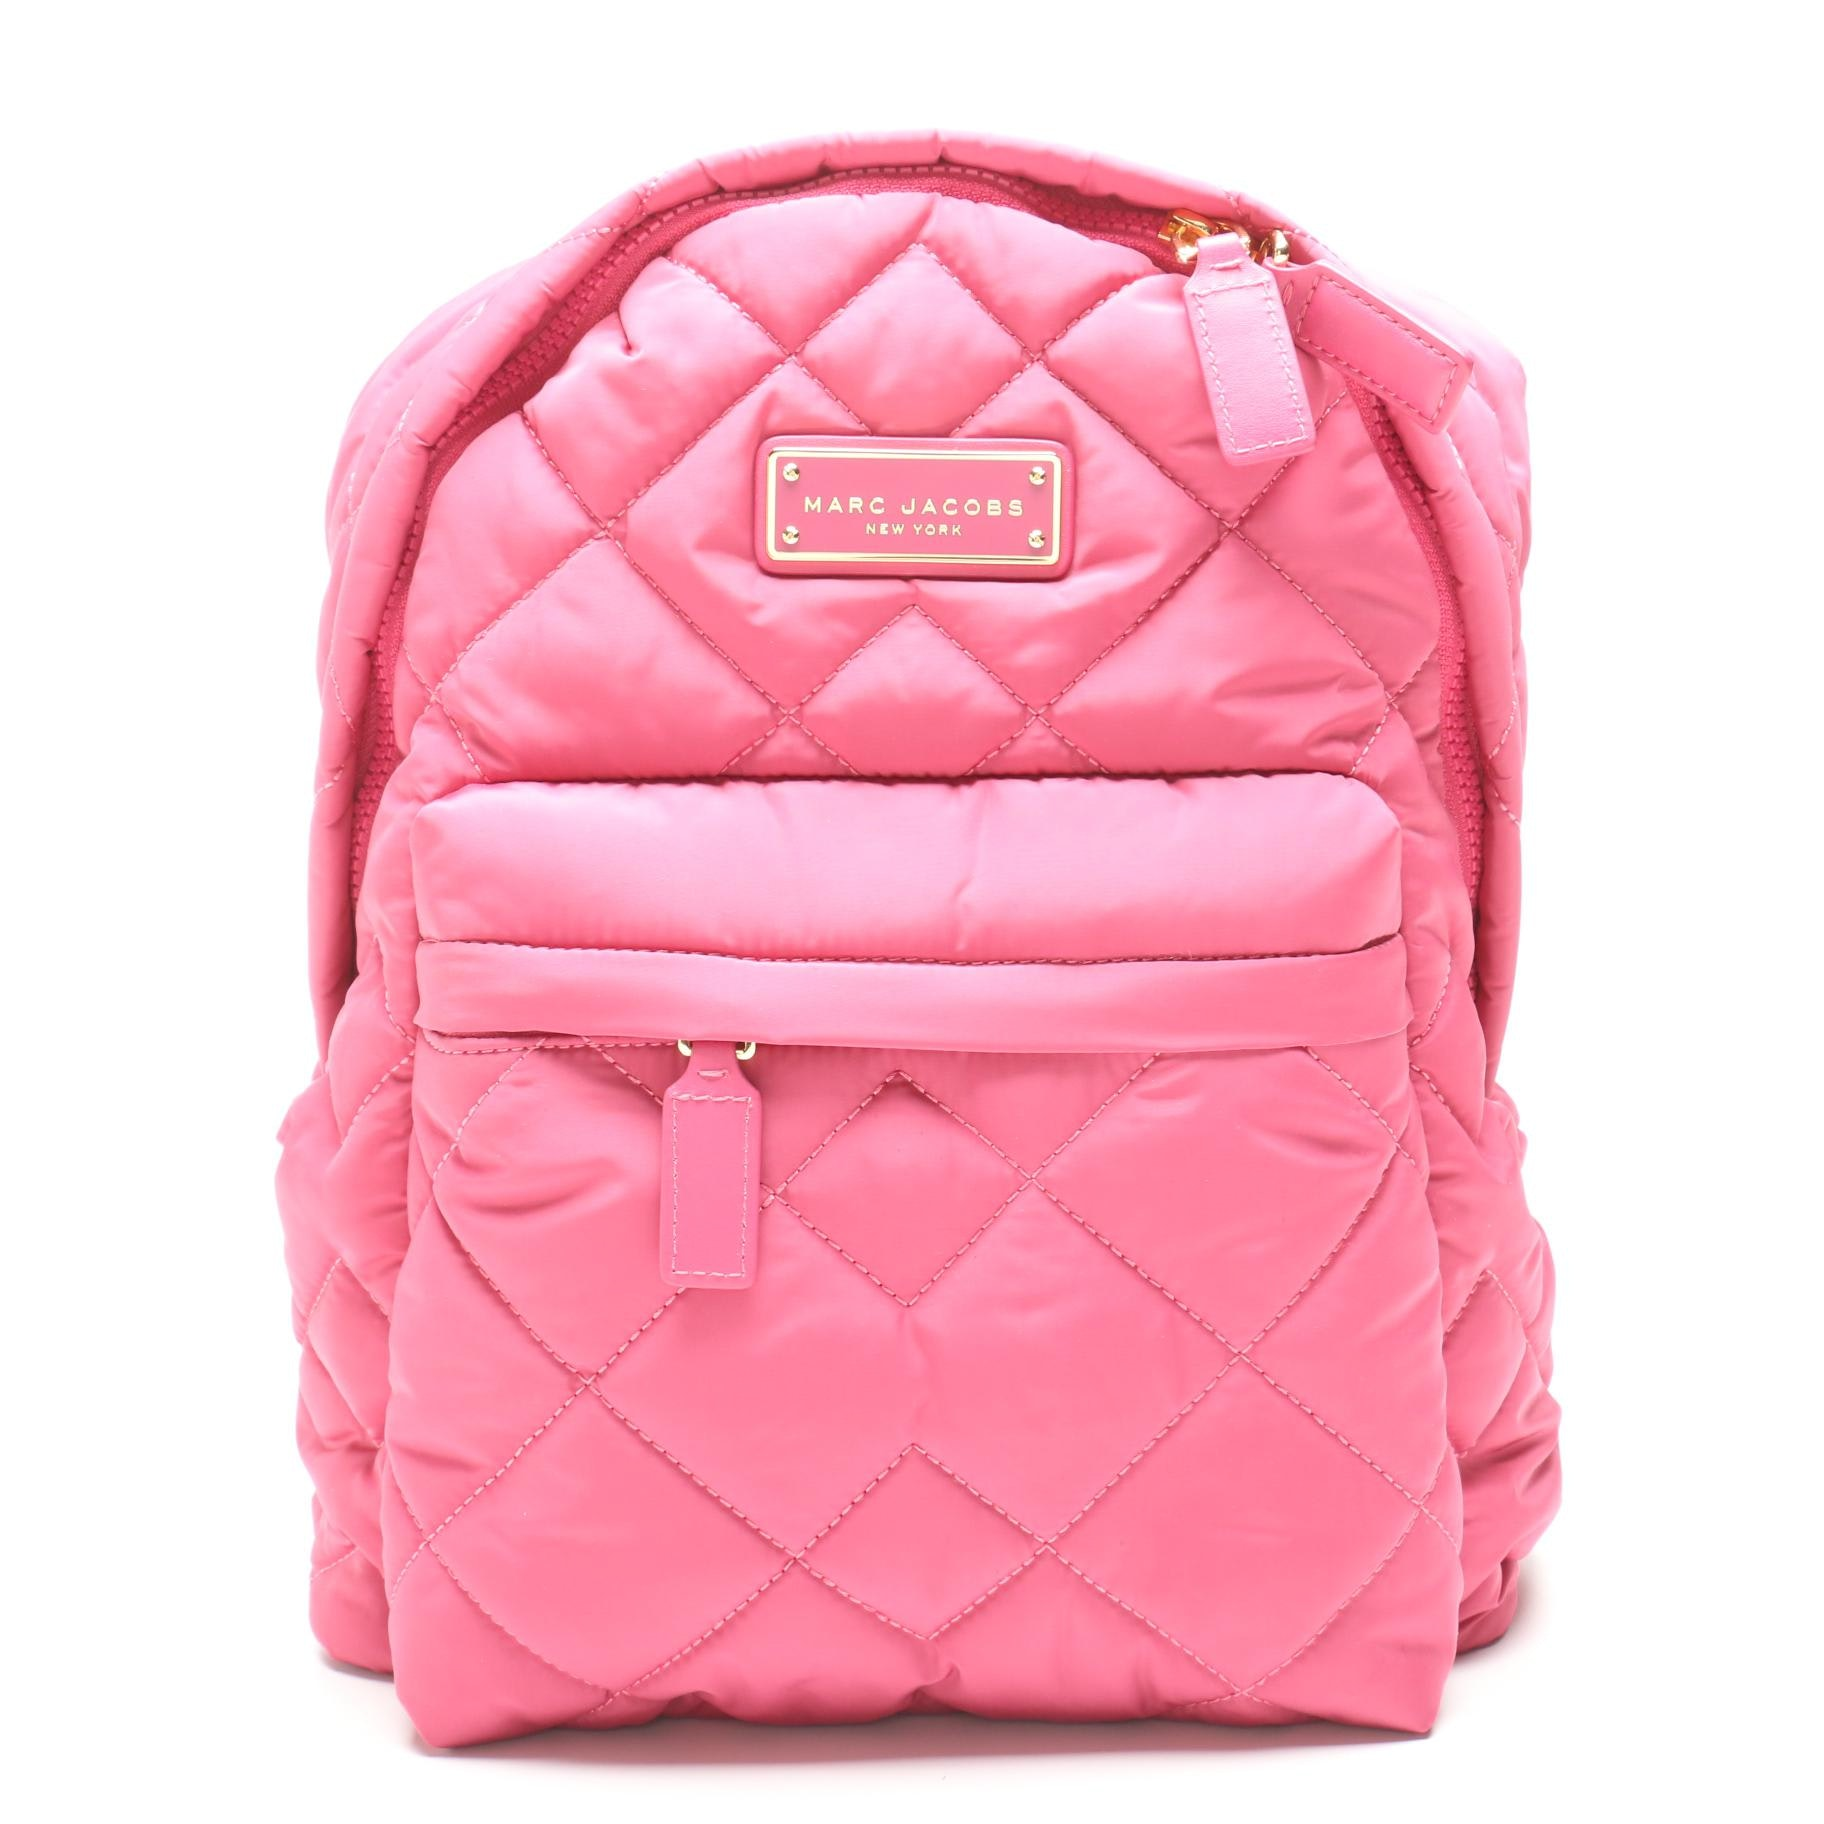 Marc Jacobs of New York Hot Pink Backpack With Tags